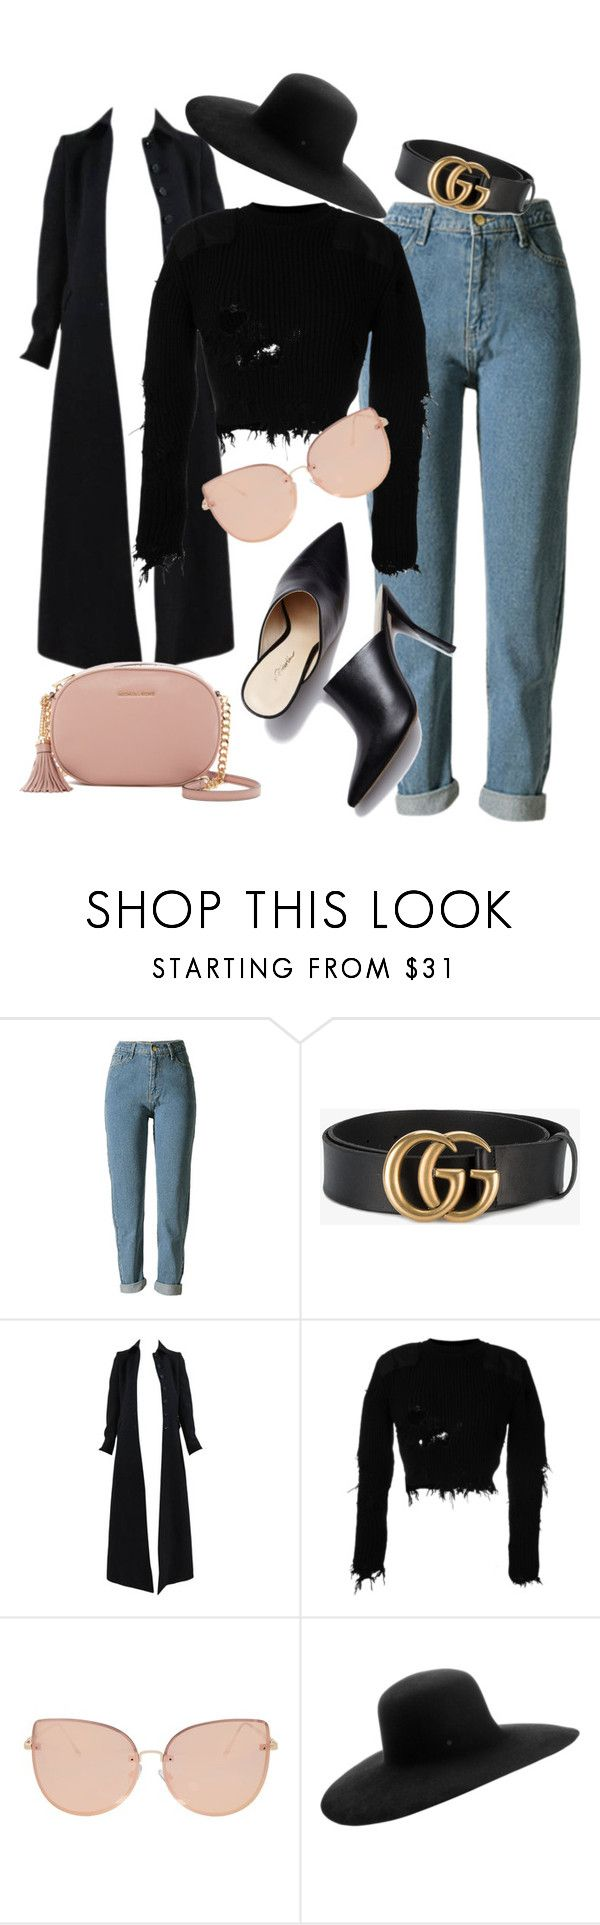 """""""Black and rose"""" by ilctorresflores on Polyvore featuring moda, WithChic, Gucci, Alaïa, Yeezy by Kanye West, Topshop, Maison Michel, MICHAEL Michael Kors, blackandrose y heeledmules"""